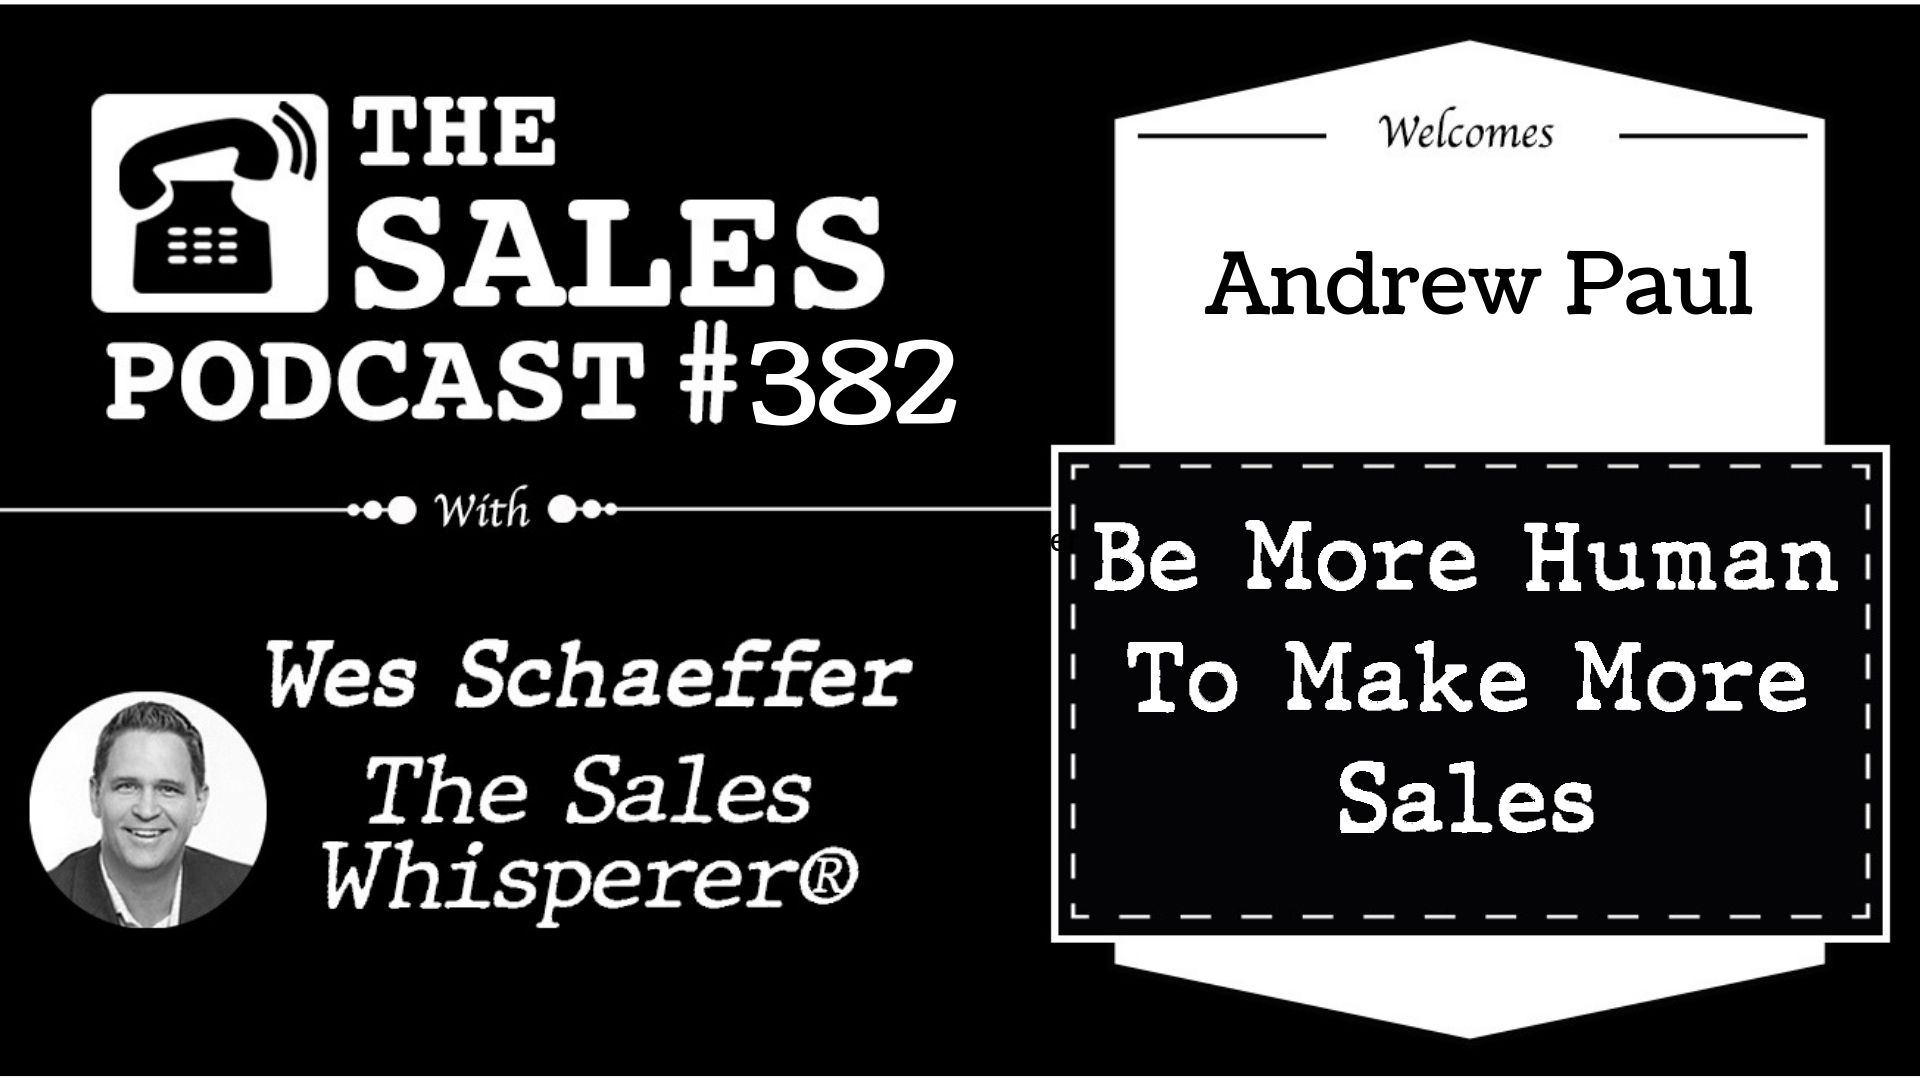 Be Yourself To Make More Sales, With Andrew Paul